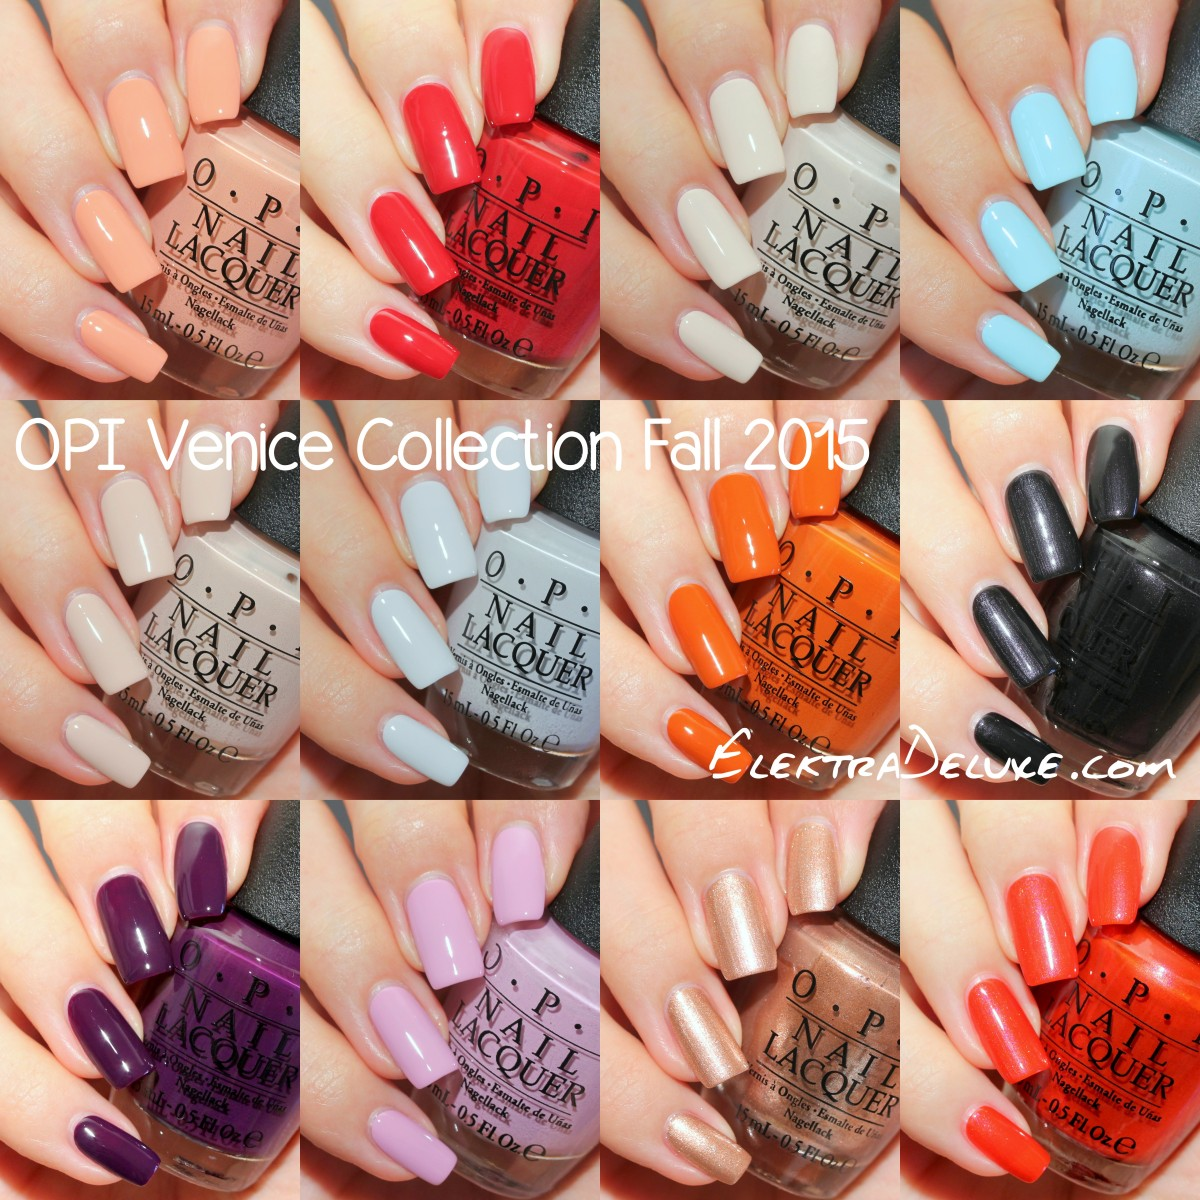 OPI Venice Collection Fall 2015 - Swatches & Review